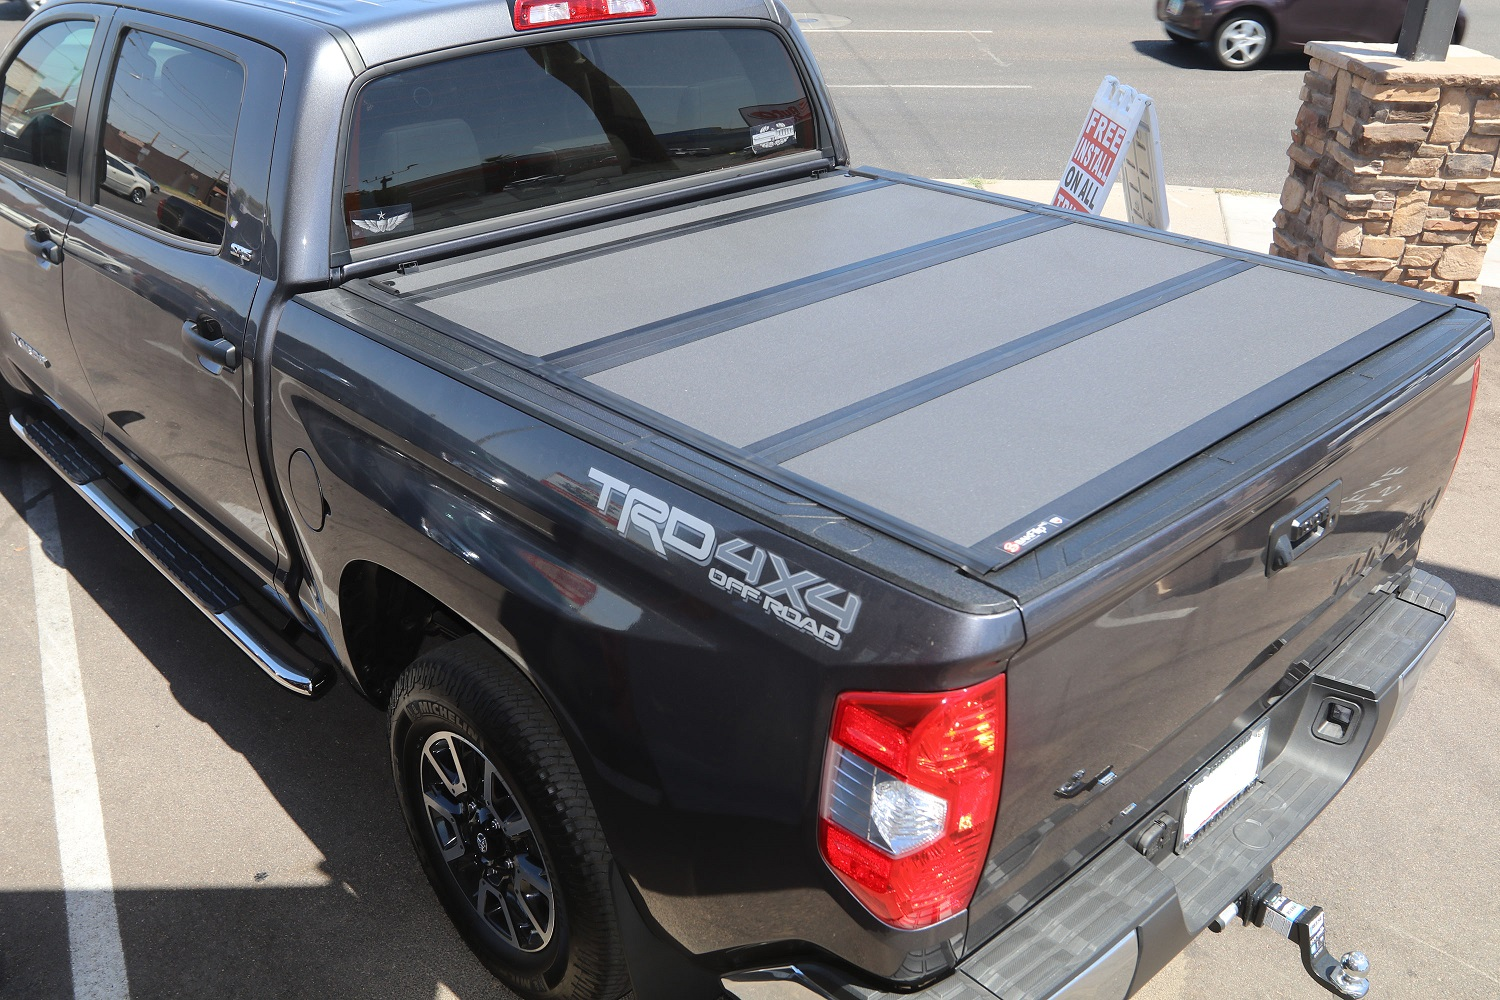 Bakflip Mx4 448410t 2007 2019 Toyota Tundra 6 5 Bed Truck Bed Cover